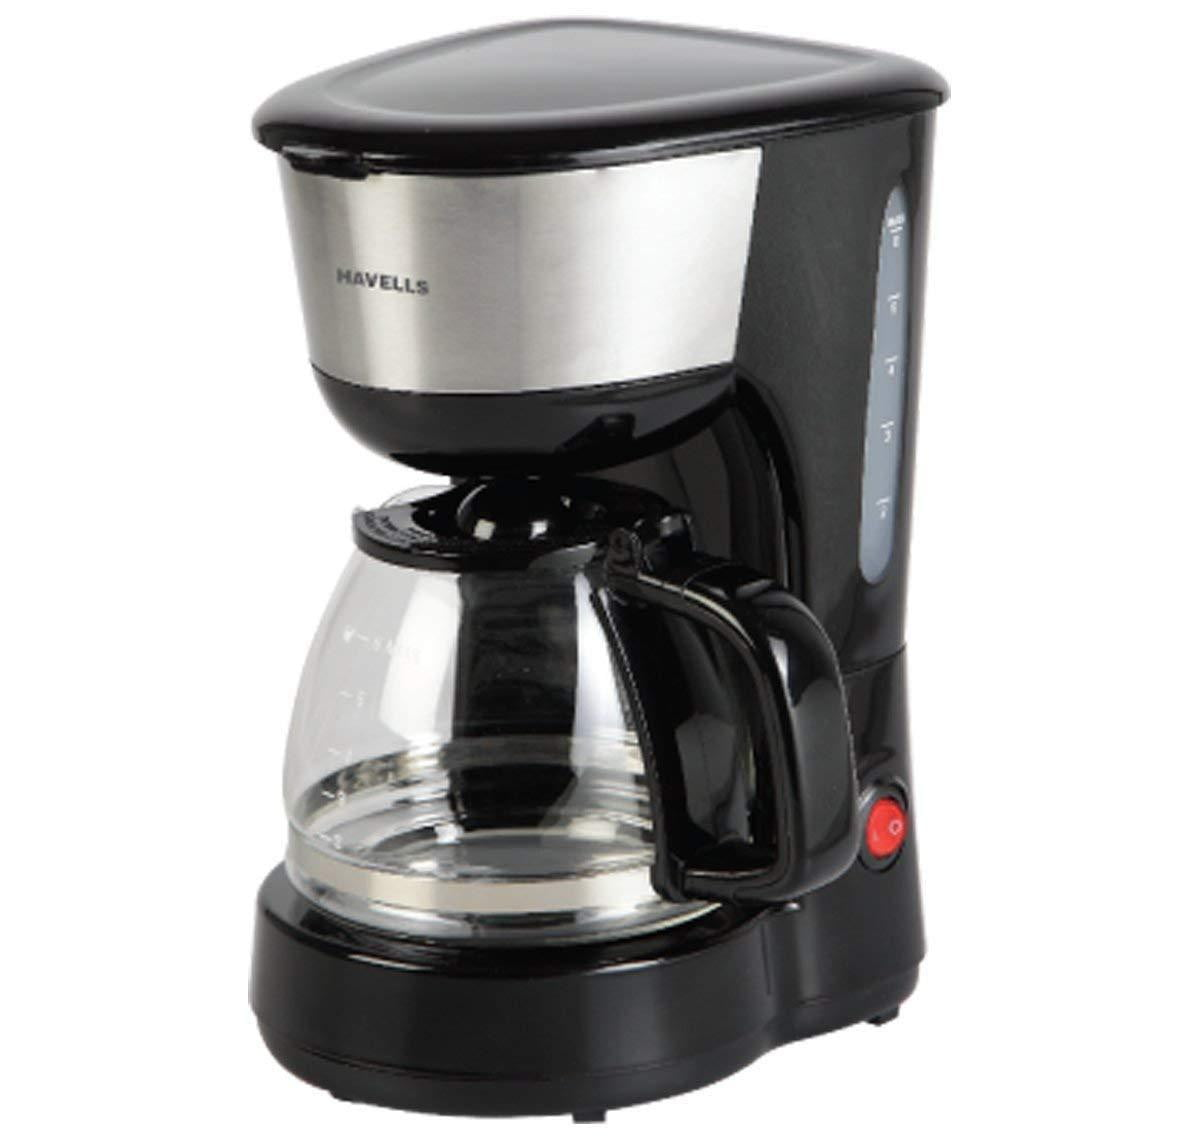 Havells Drip Cafe-N 6 600W Drip Coffee Machine (Black) - Buythevalue.in